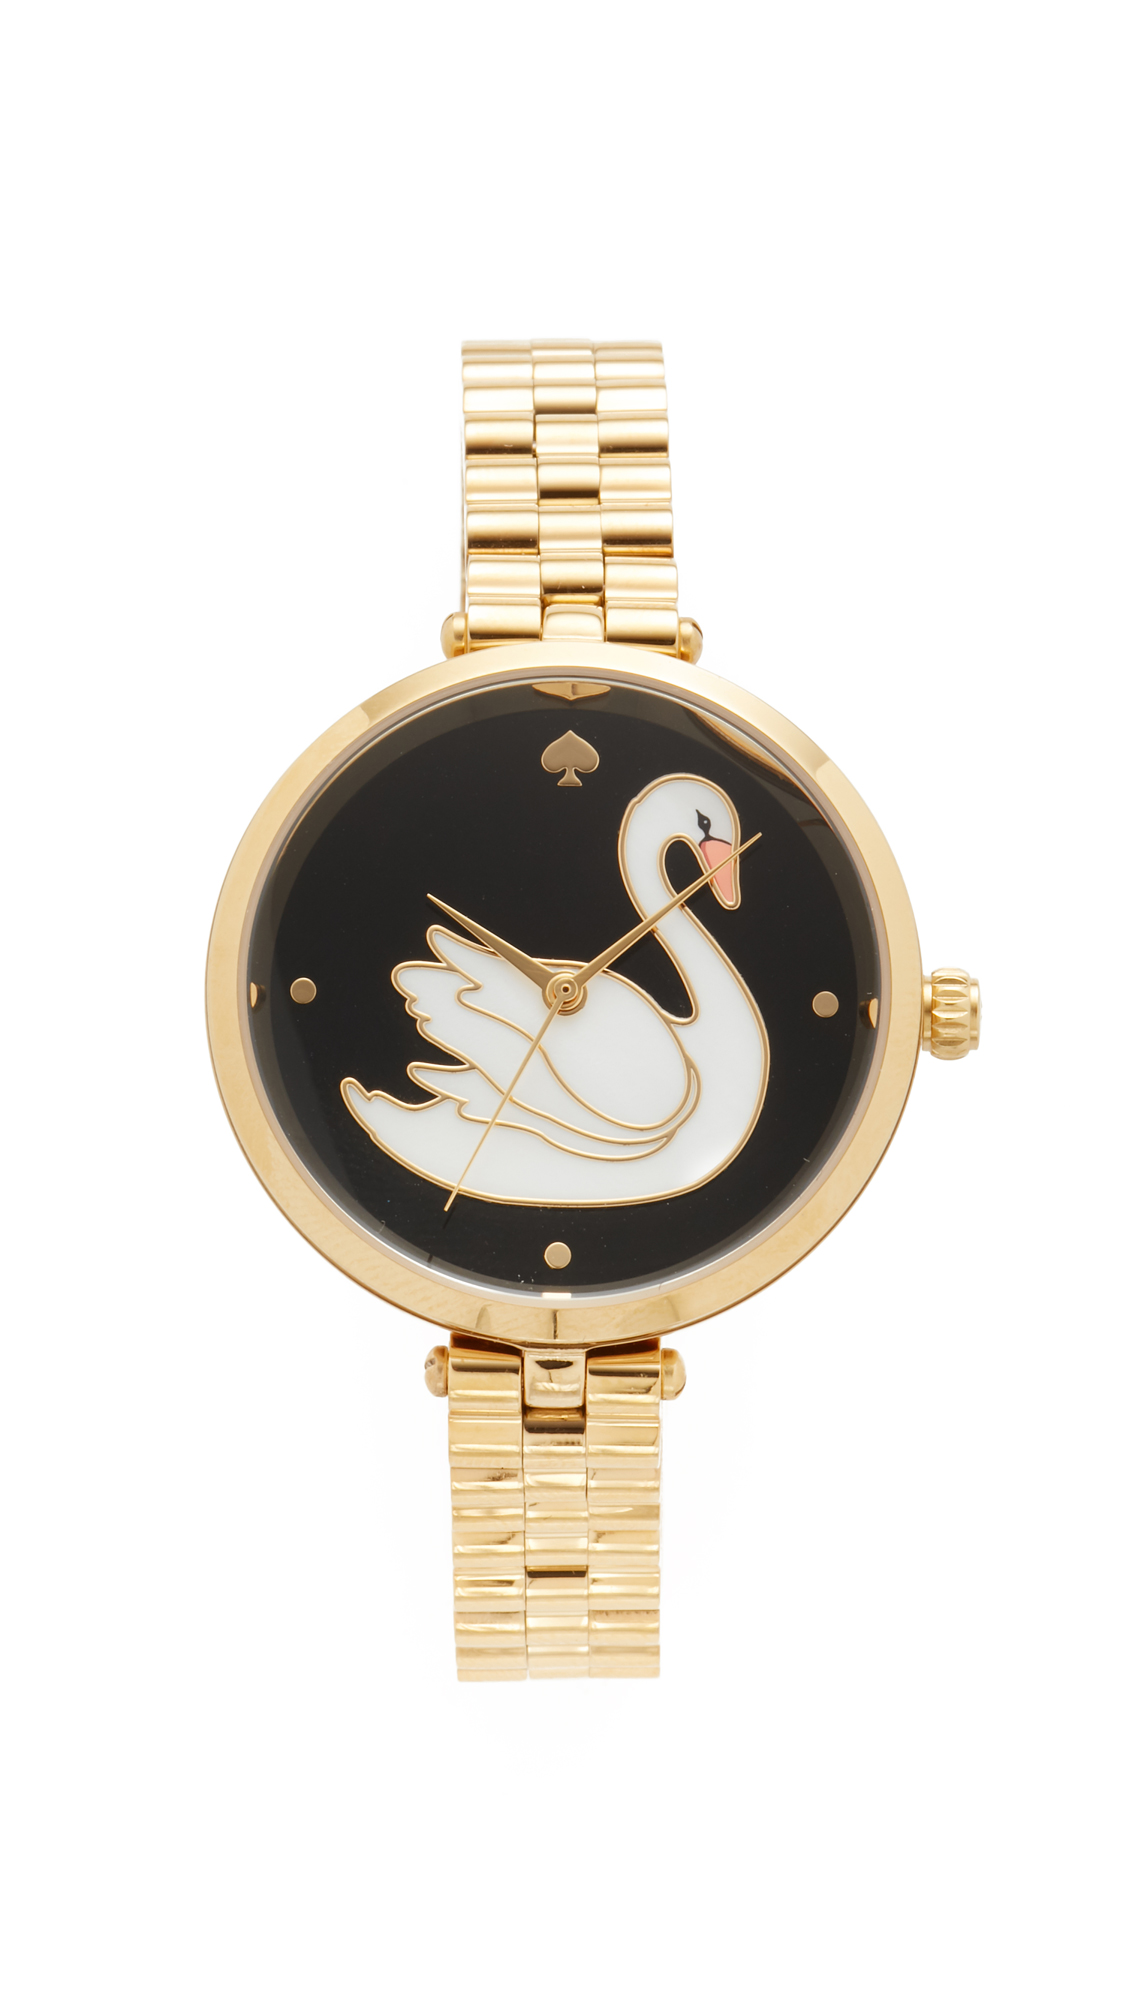 Kate Spade New York Swan Watch - Gold at Shopbop